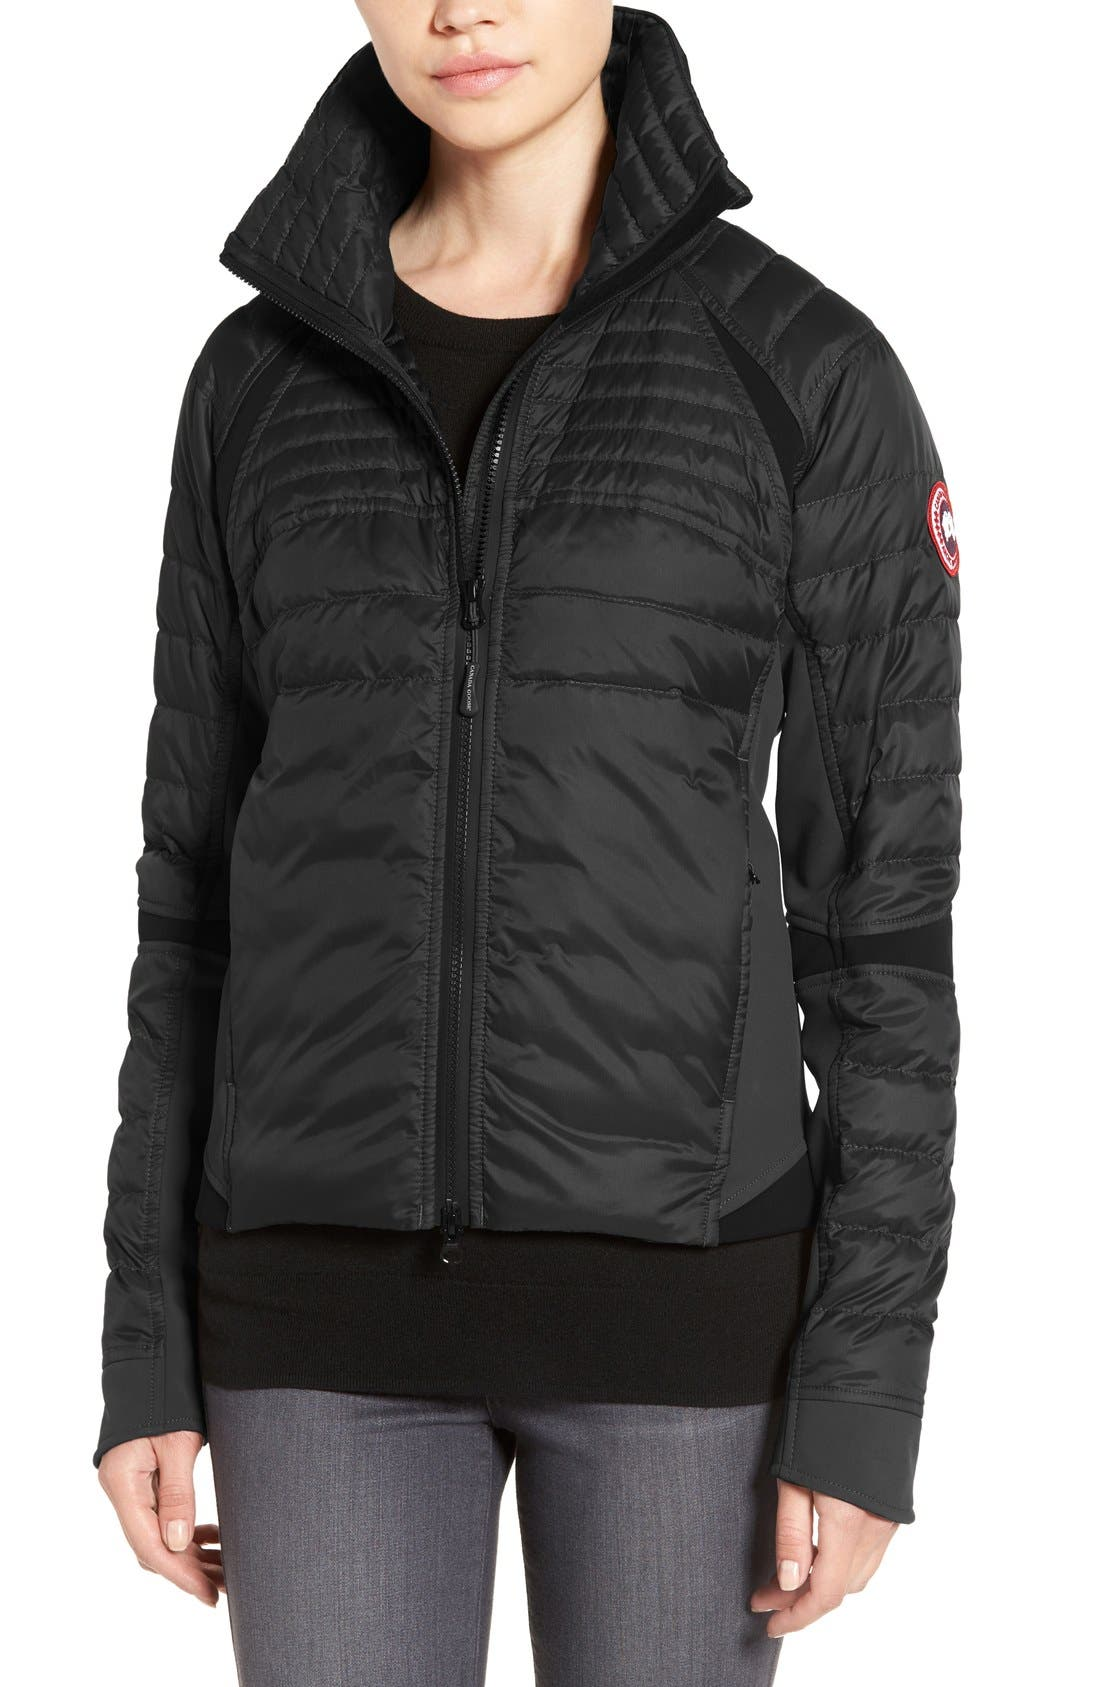 Hybridge Perren Jacket,                         Main,                         color, BLACK